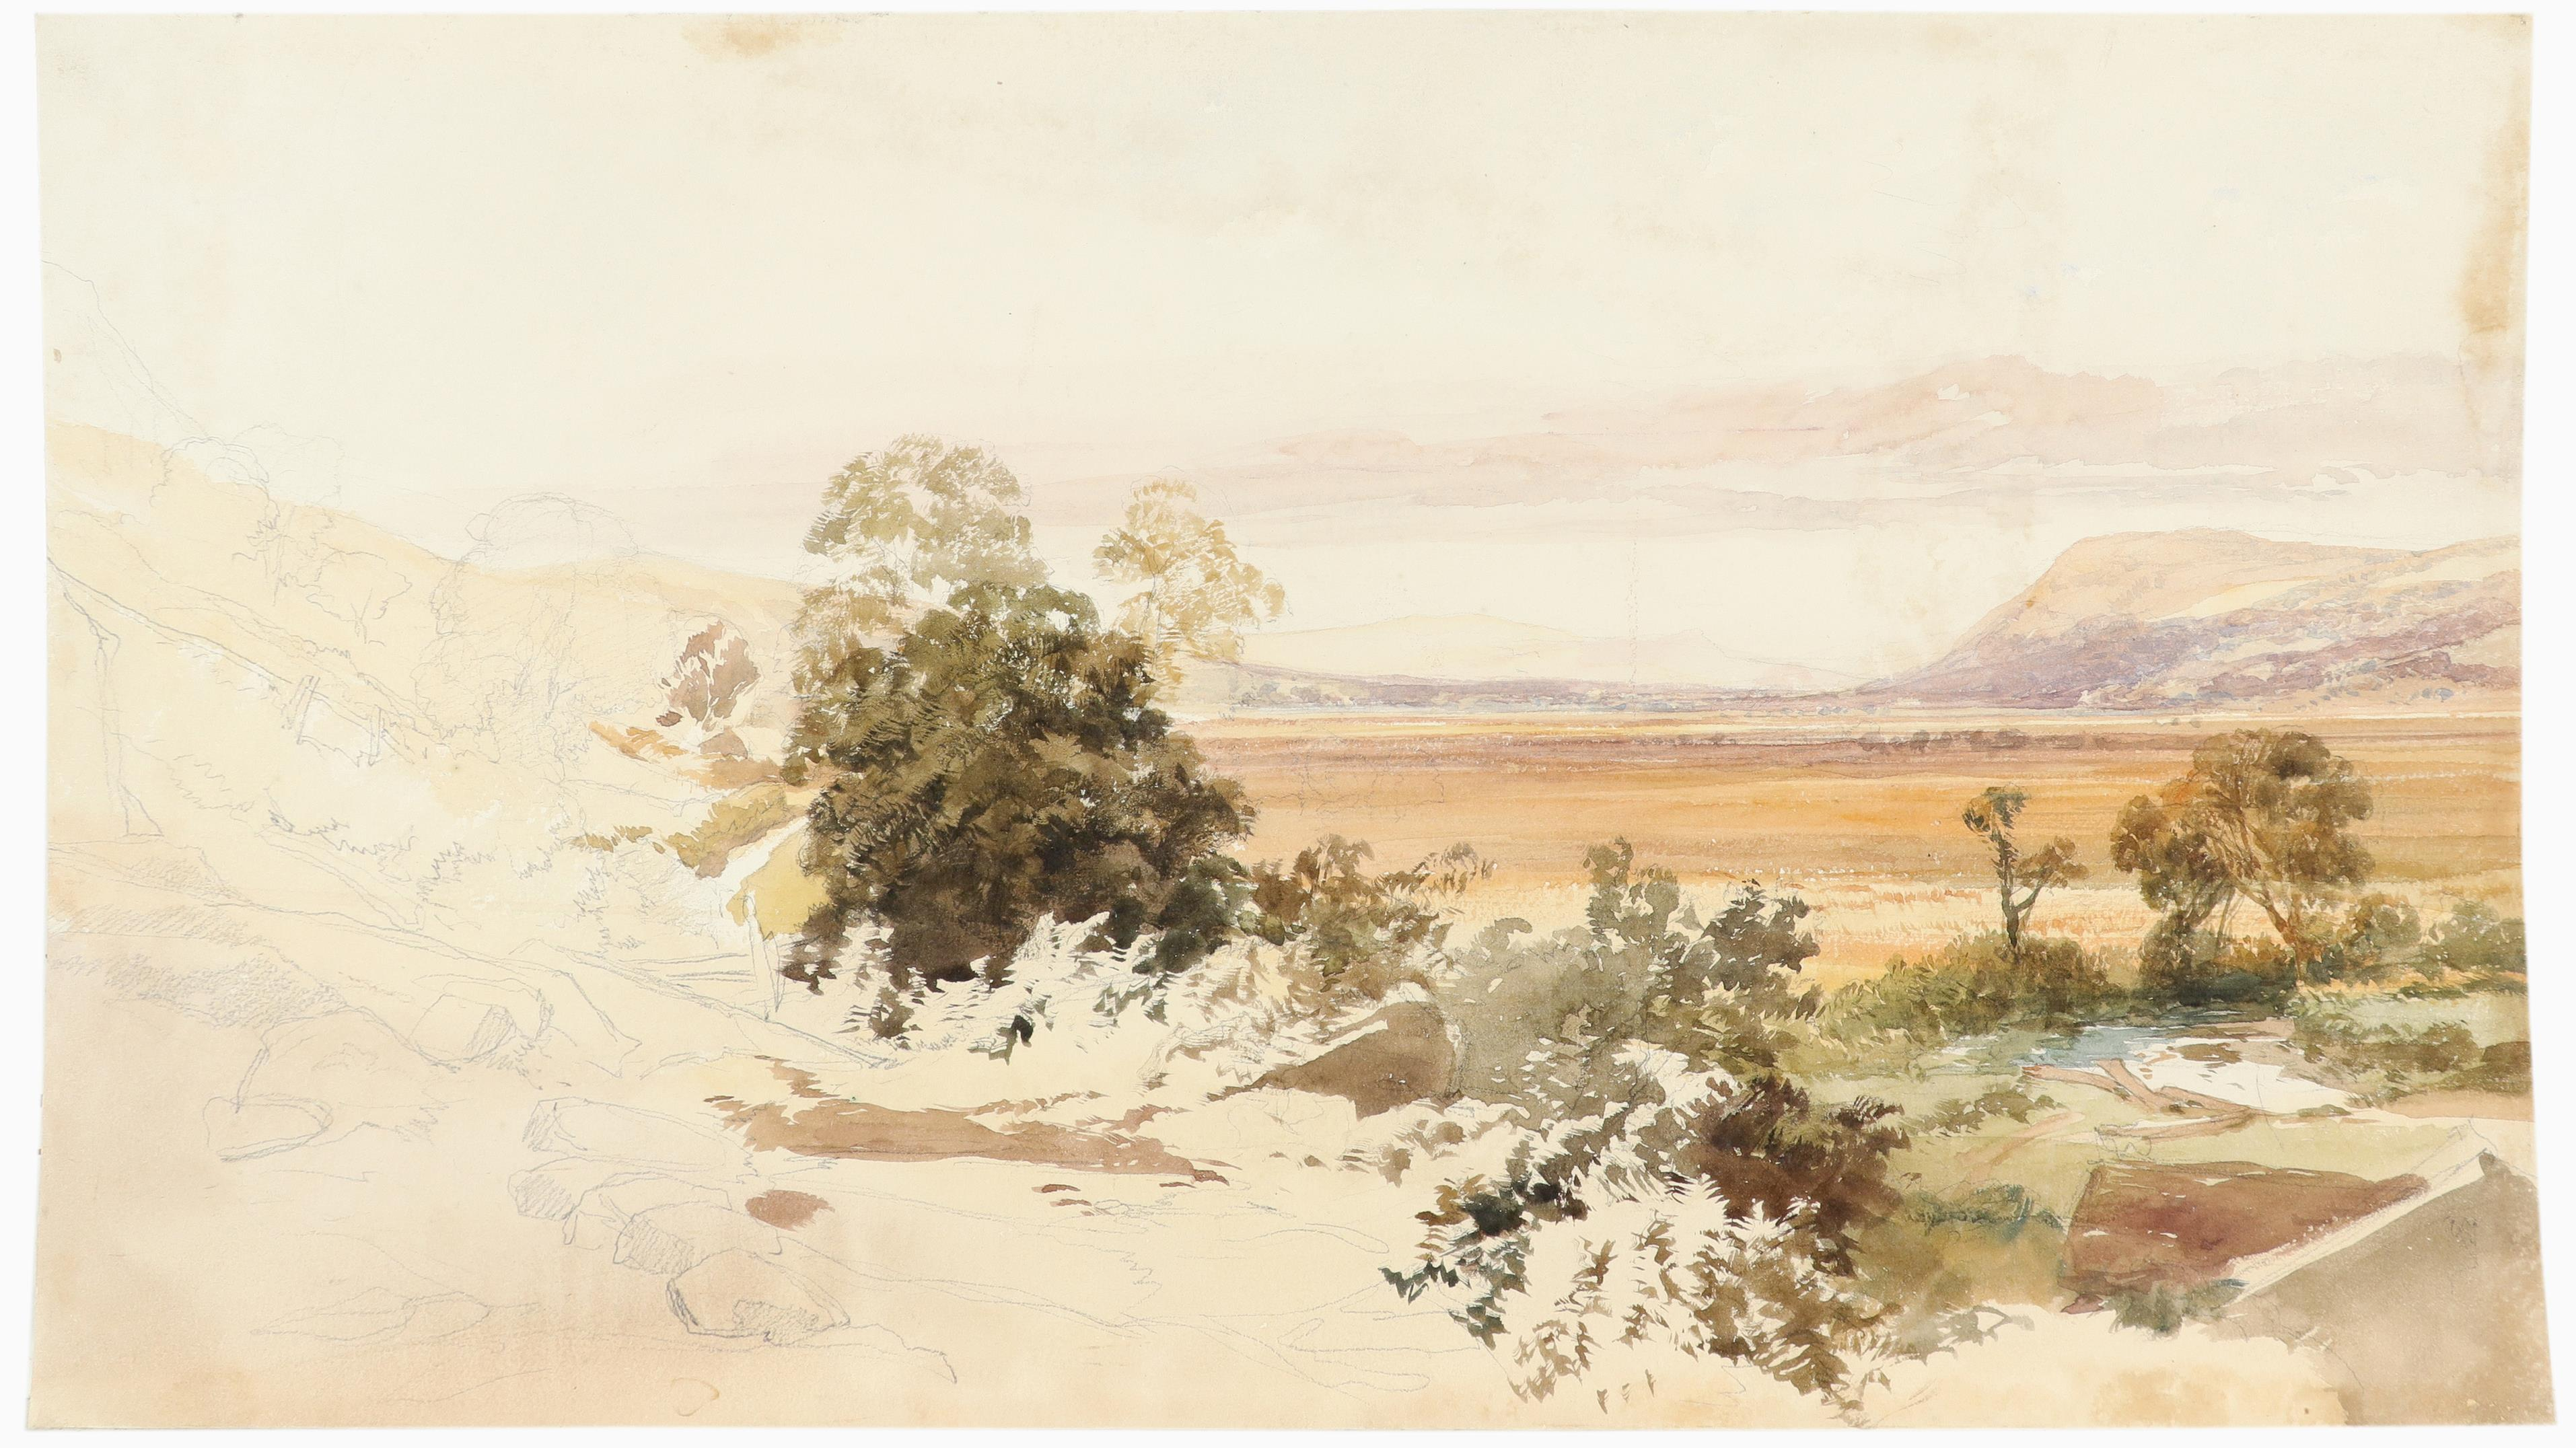 James Duffield Harding (1798-1863) Extensive landscape with mountains in the distance Watercolour - Image 2 of 3